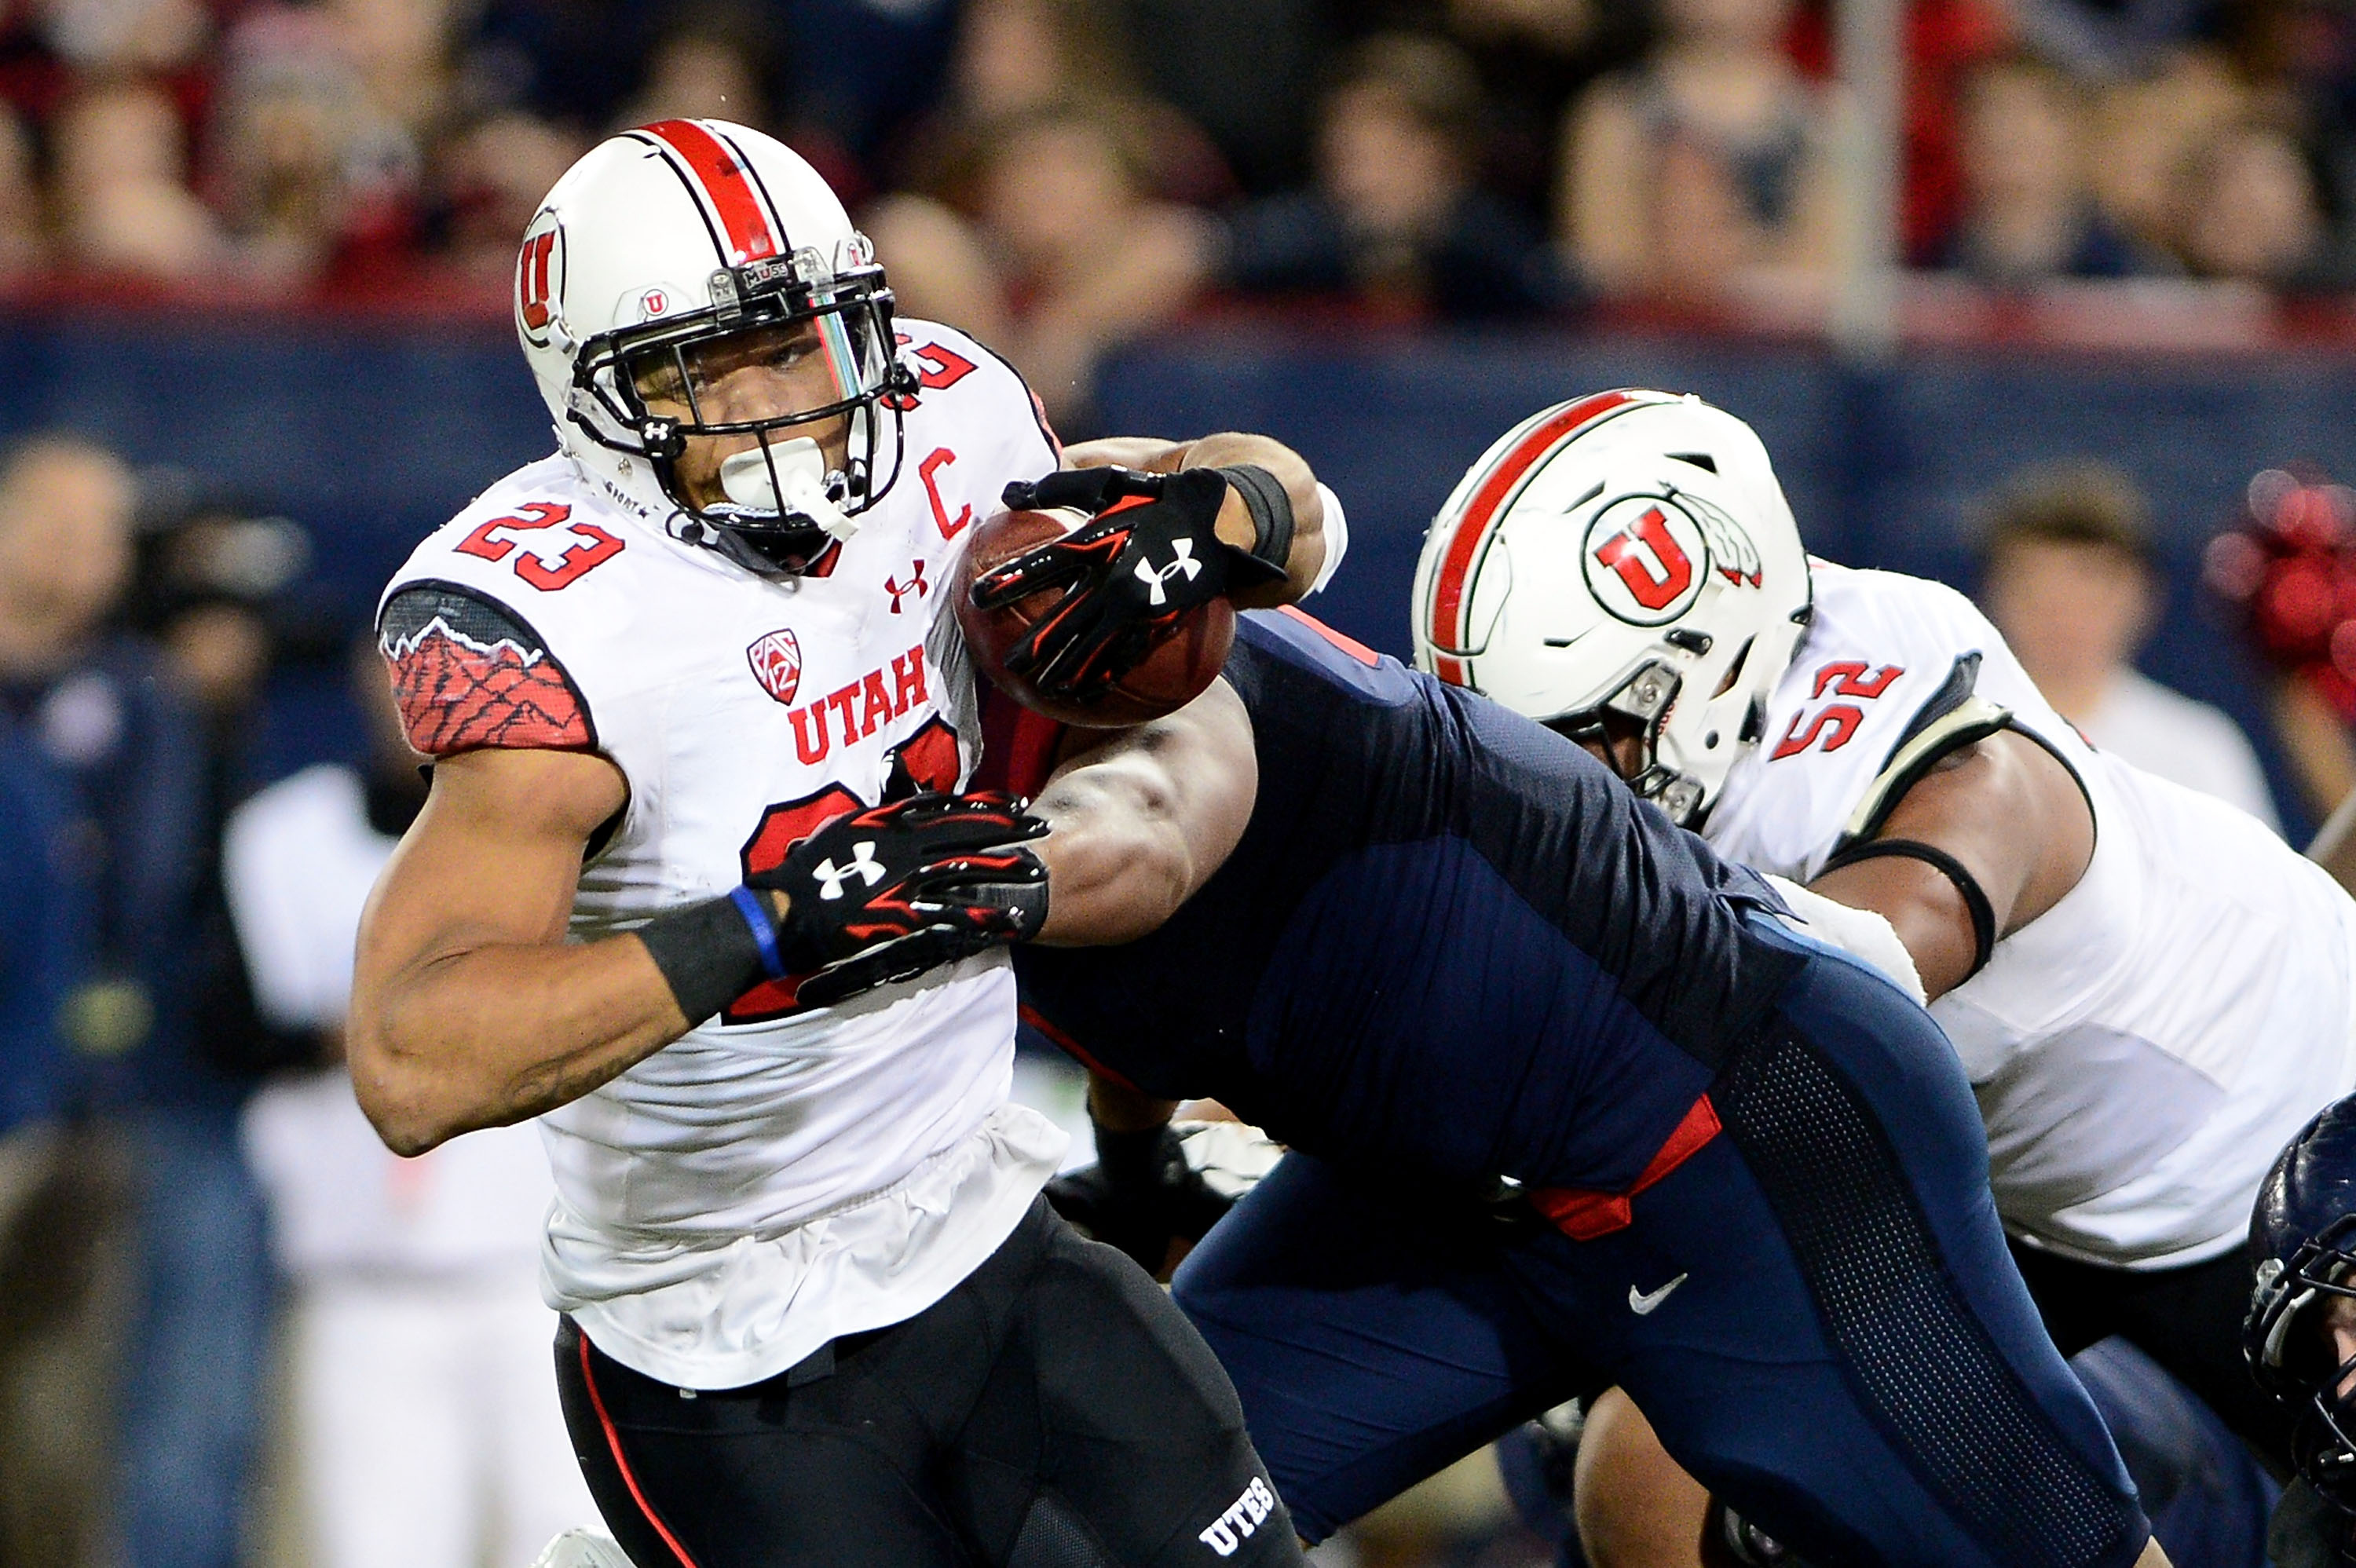 Running back Devontae Booker #23 of the Utah Utes runs with the football against the Arizona Wildcats in the third quarter at Arizona Stadium on November 14, 2015 in Tucson, Arizona. The Wildcats defeated the utes 37-30 in double overtime. (Photo by Jennifer Stewart/Getty Images)